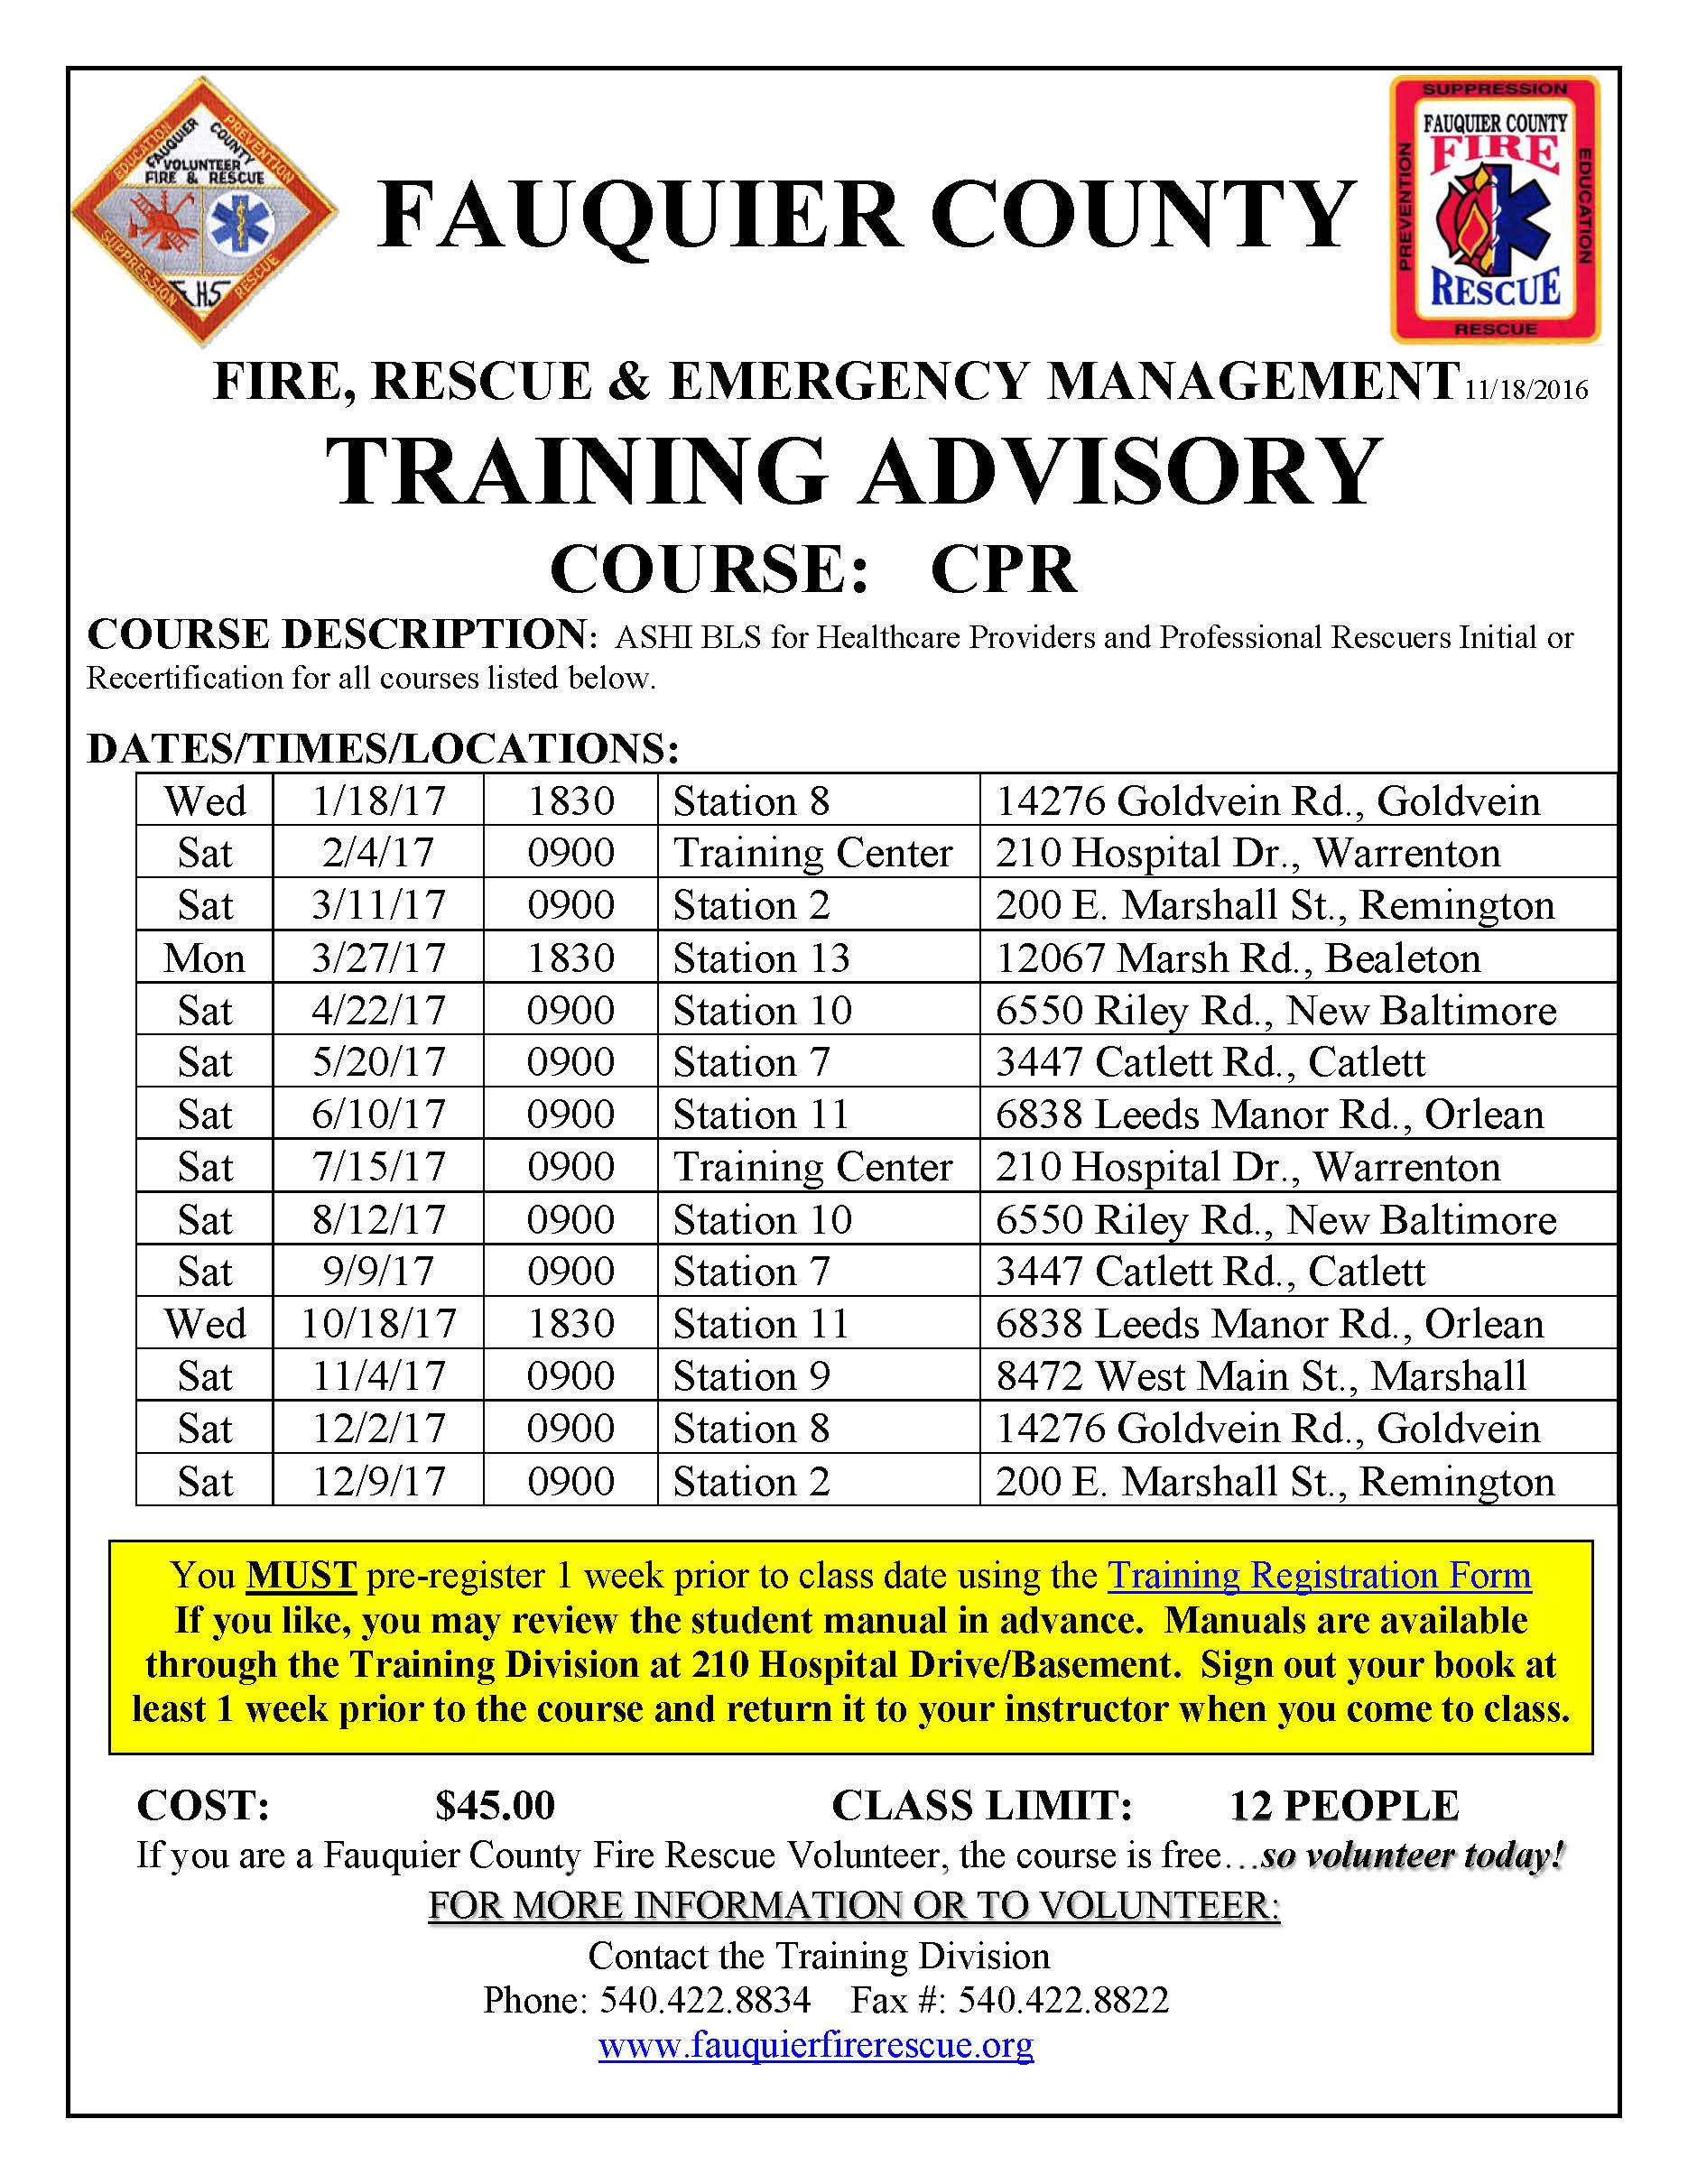 Fauquier county fire rescue fauquier ems training ashi 2017 cpr course listing xflitez Choice Image